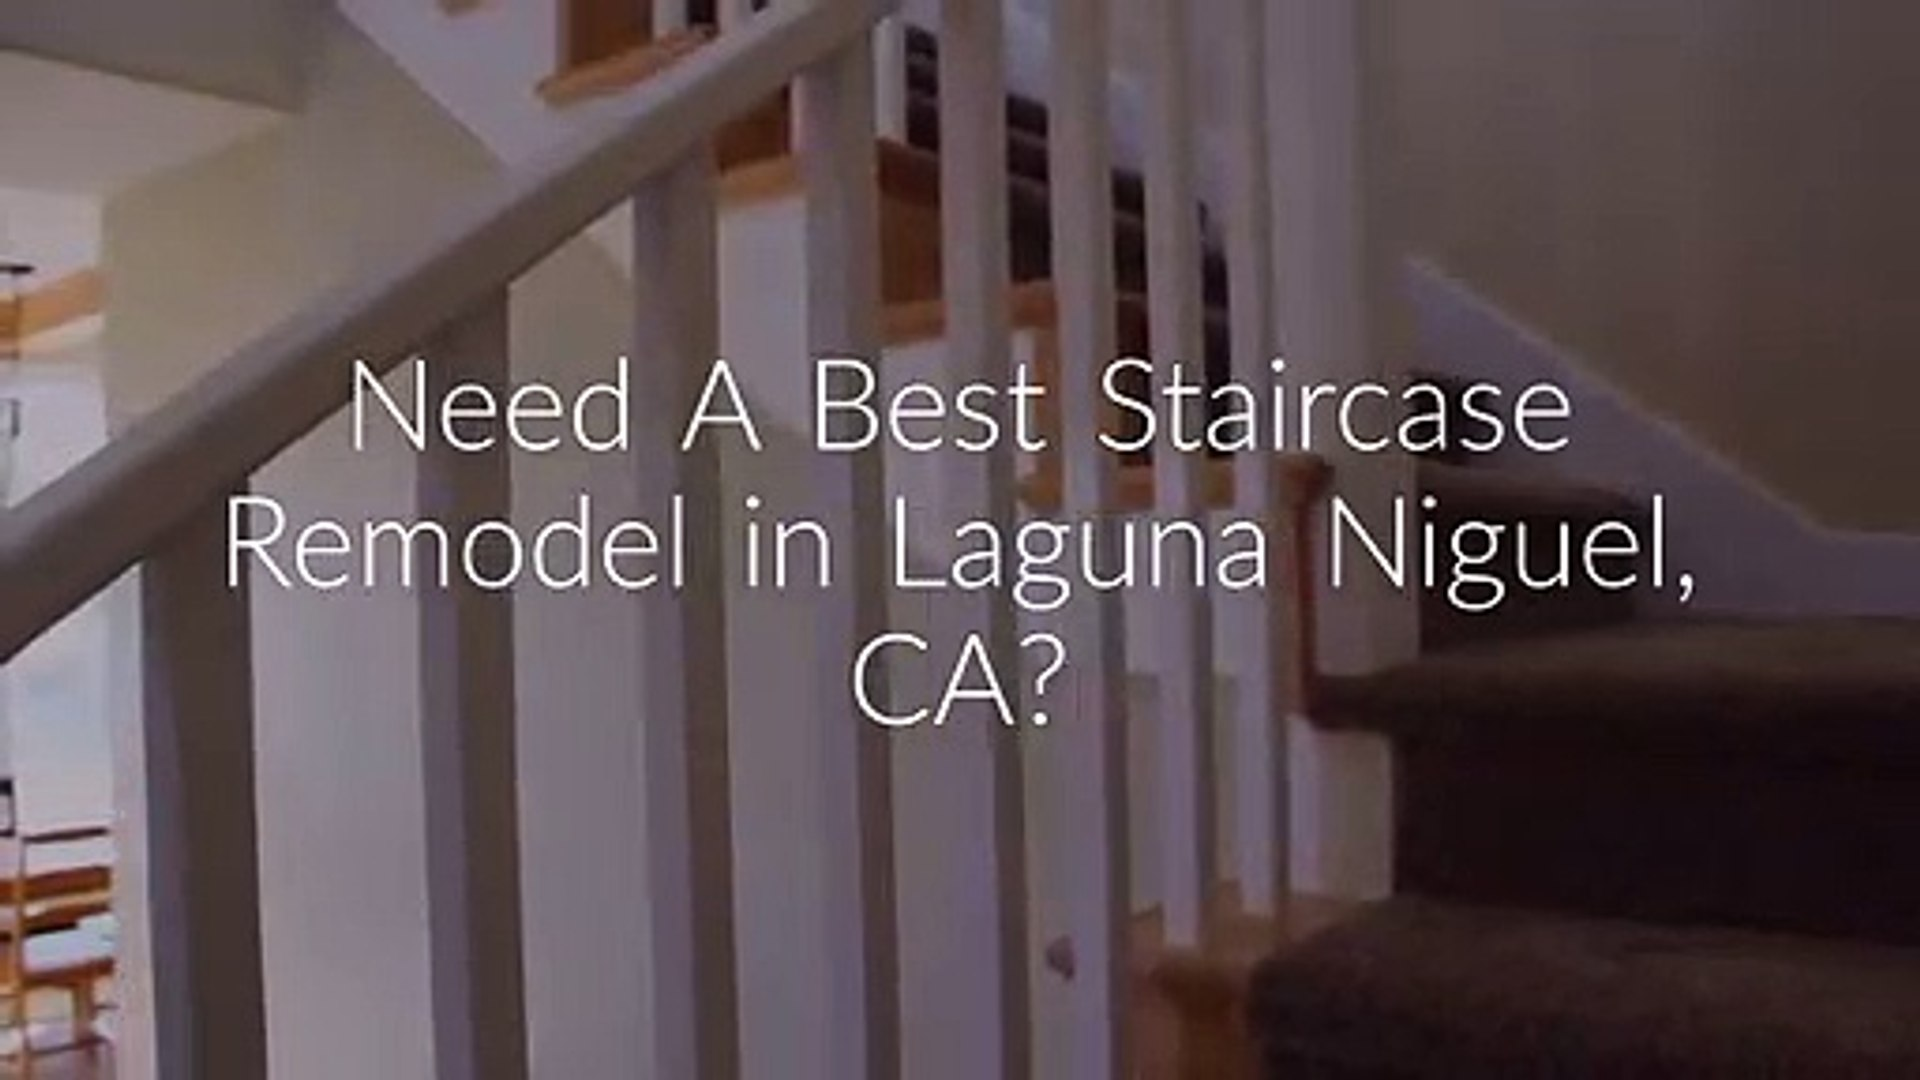 Staircase Remodel Accord Stairs 949 280 7949